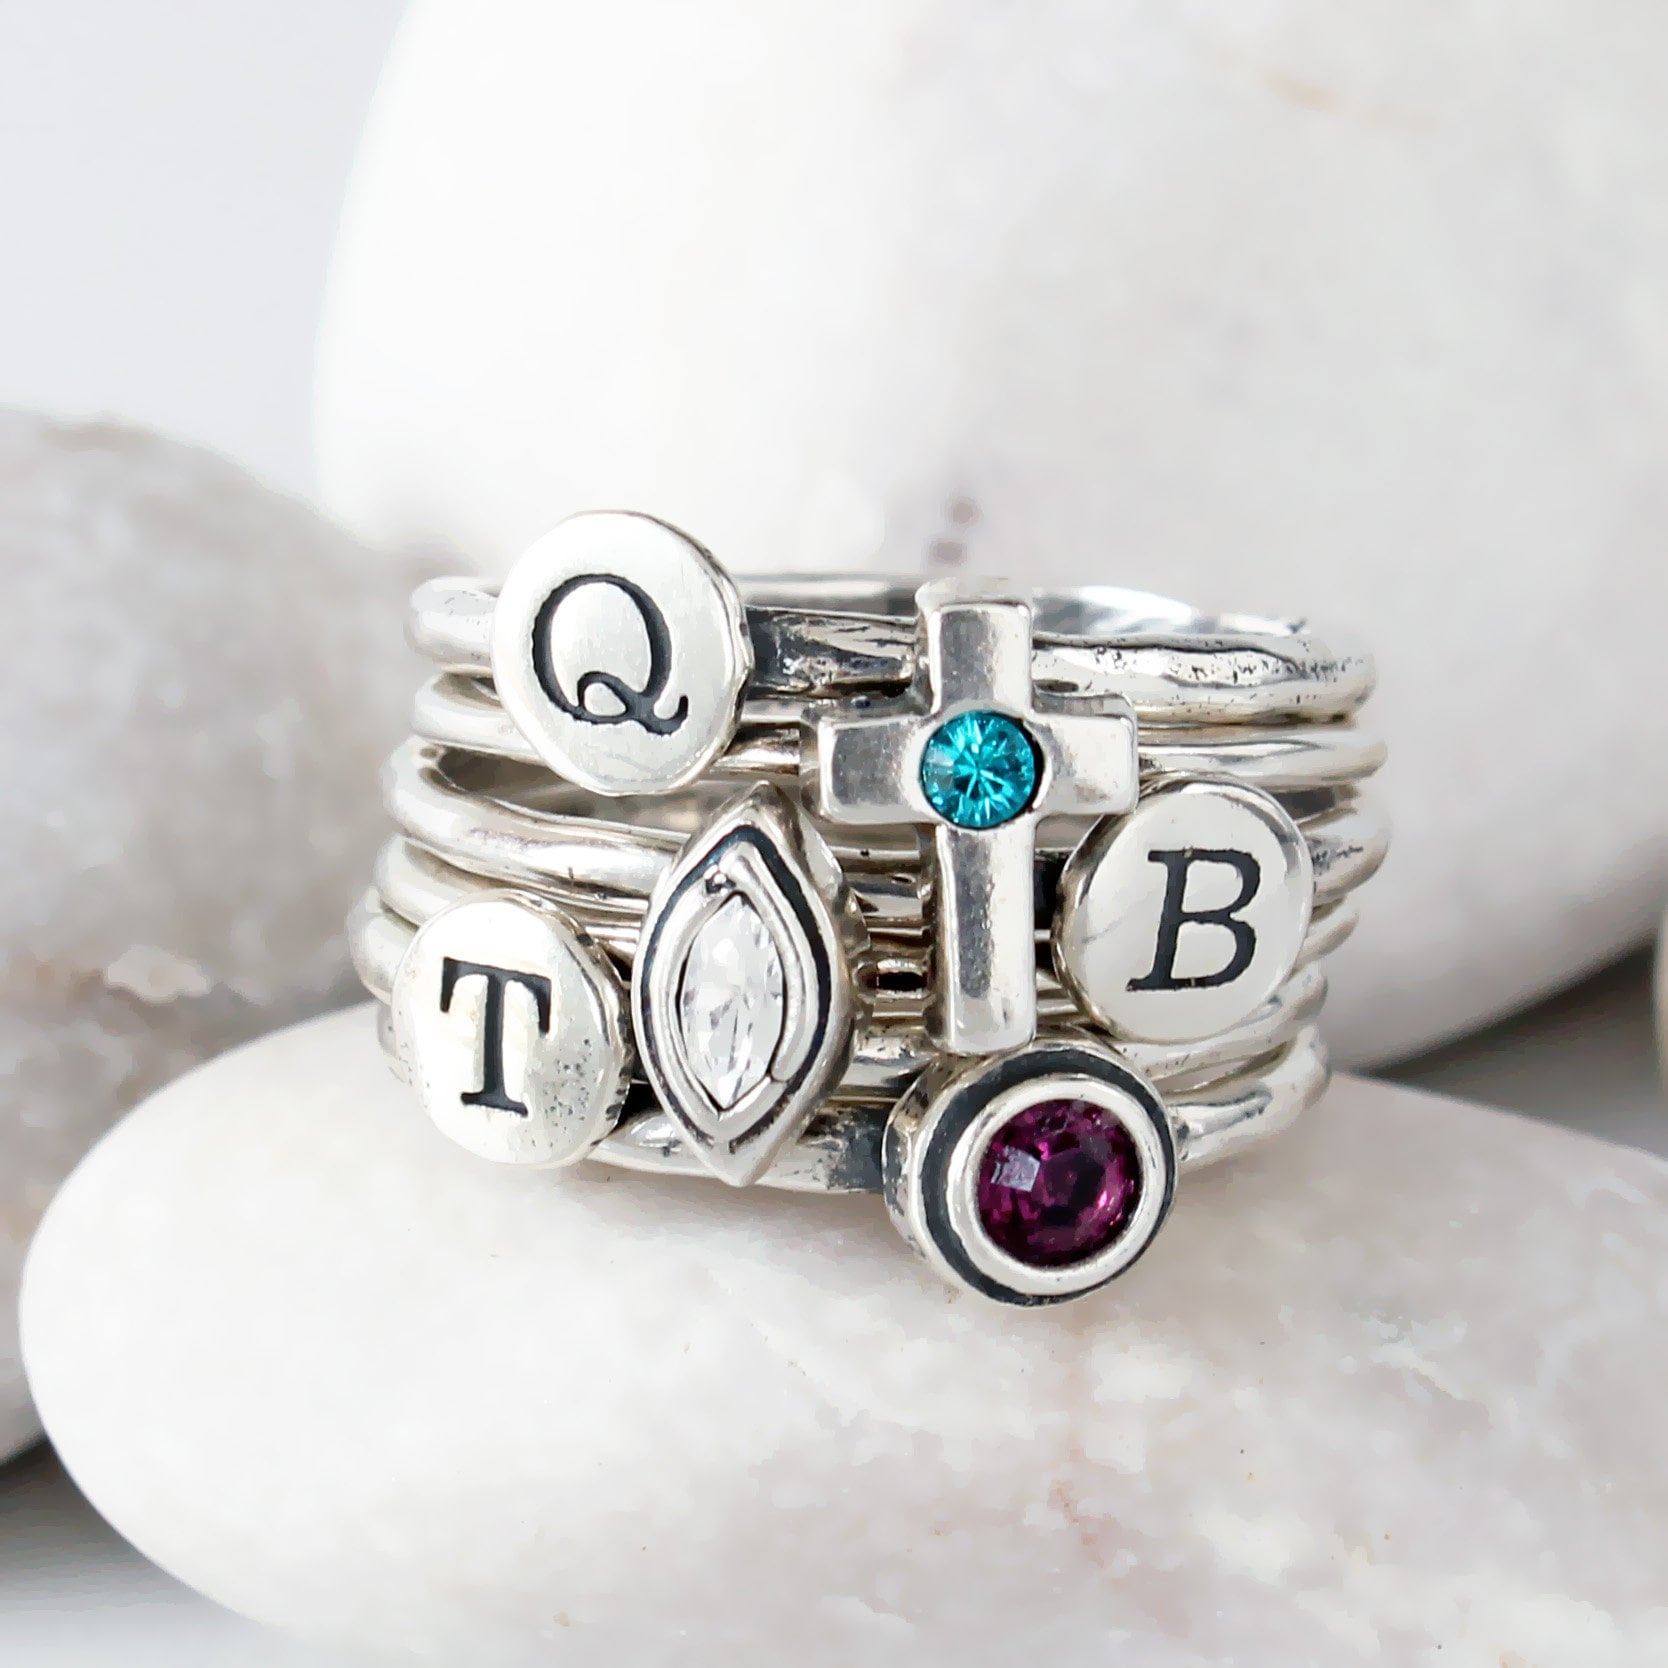 what is the birthstone for april 21